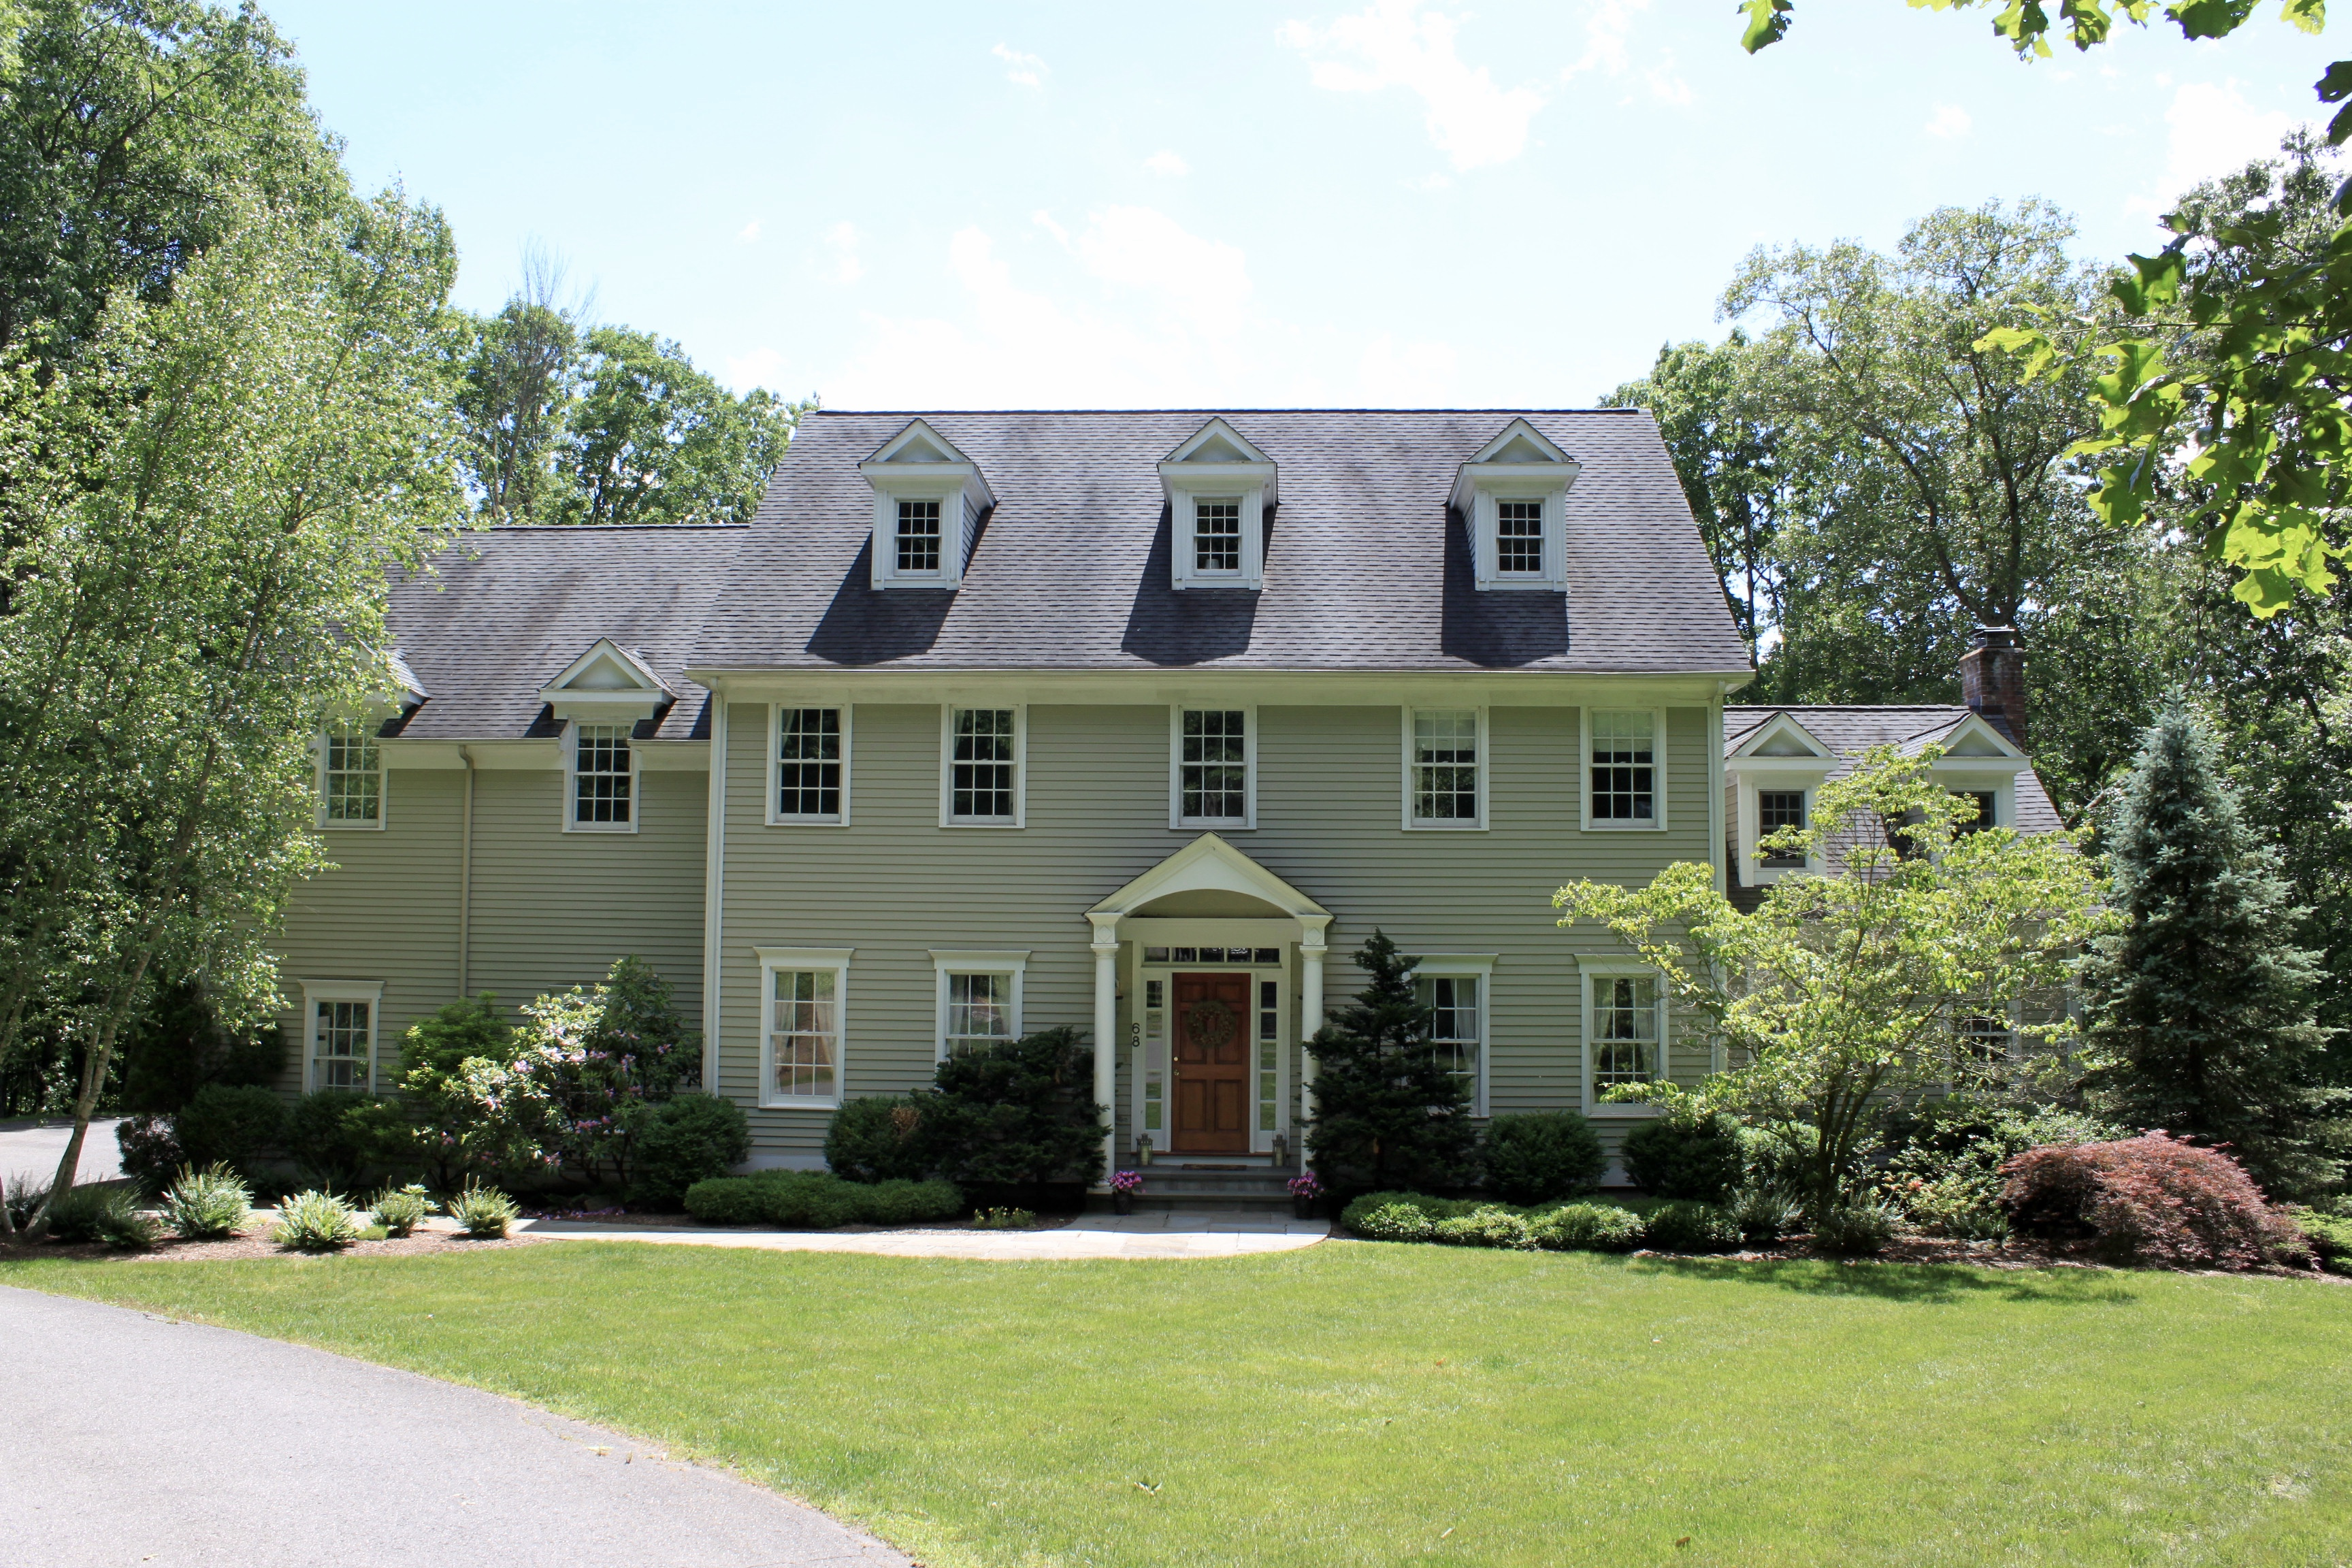 Single Family Home for Sale at Spacious Colonial Set Privately 68 Topstone Road Ridgefield, Connecticut, 06877 United States